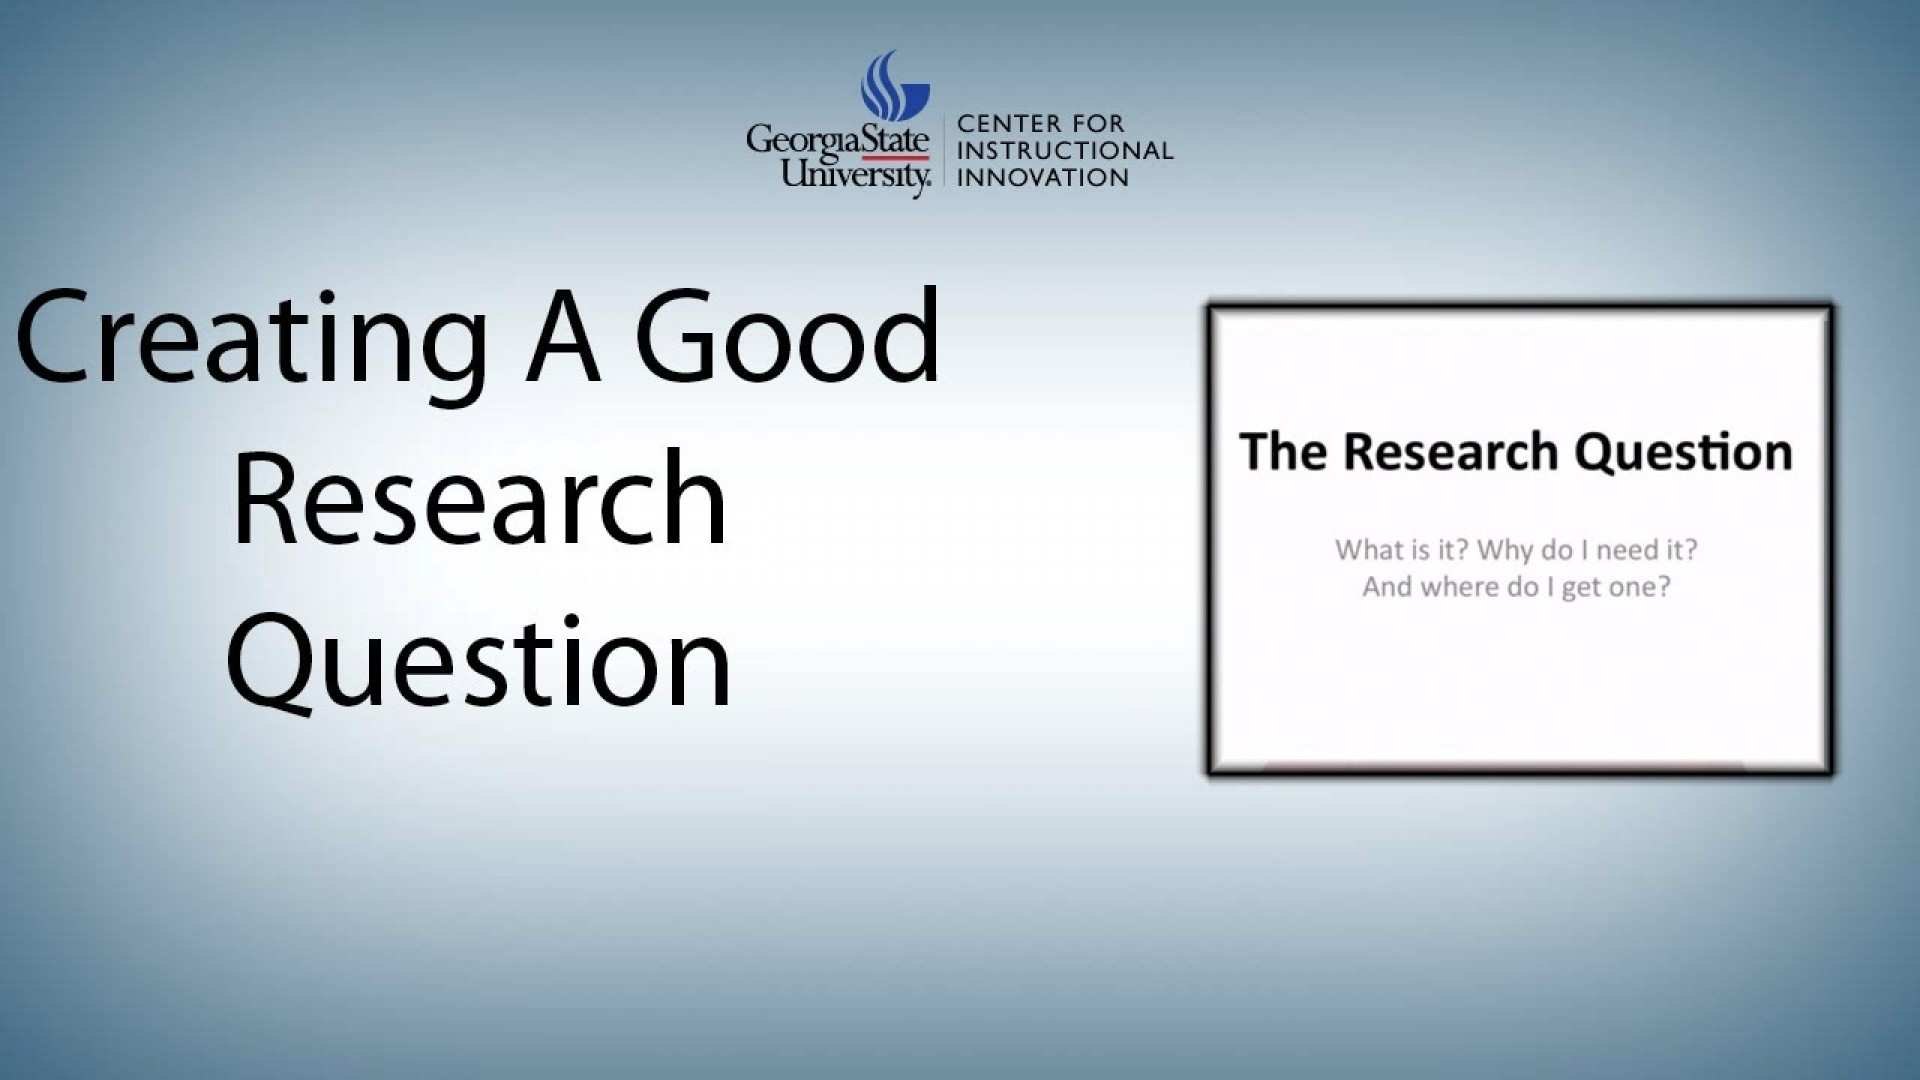 004 How To Write Great Research Paper Ppt Striking A Good Scientific 1920